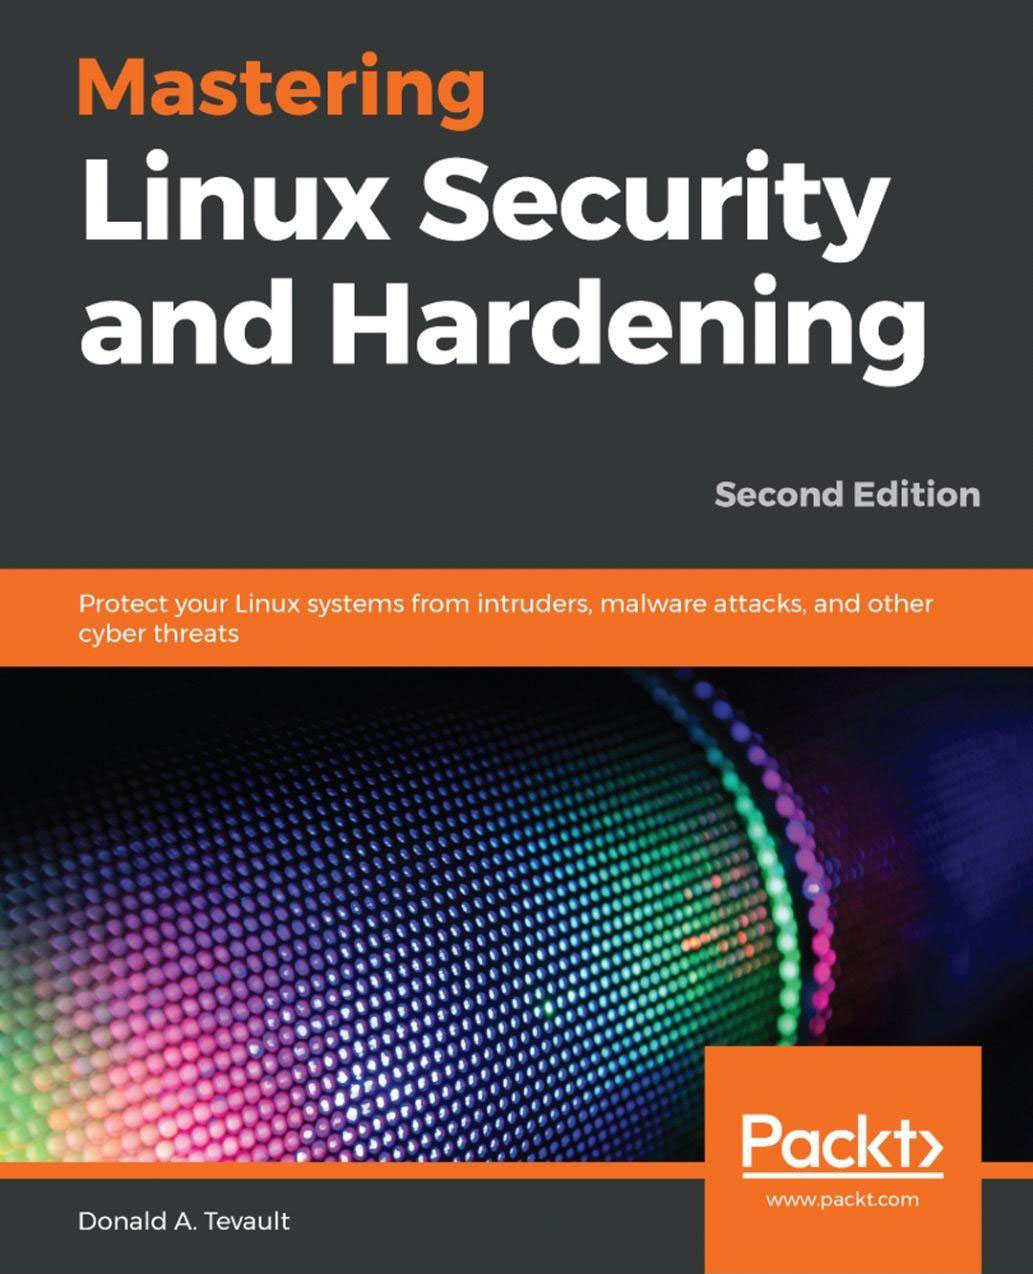 کتاب Mastering Linux Security and Hardening